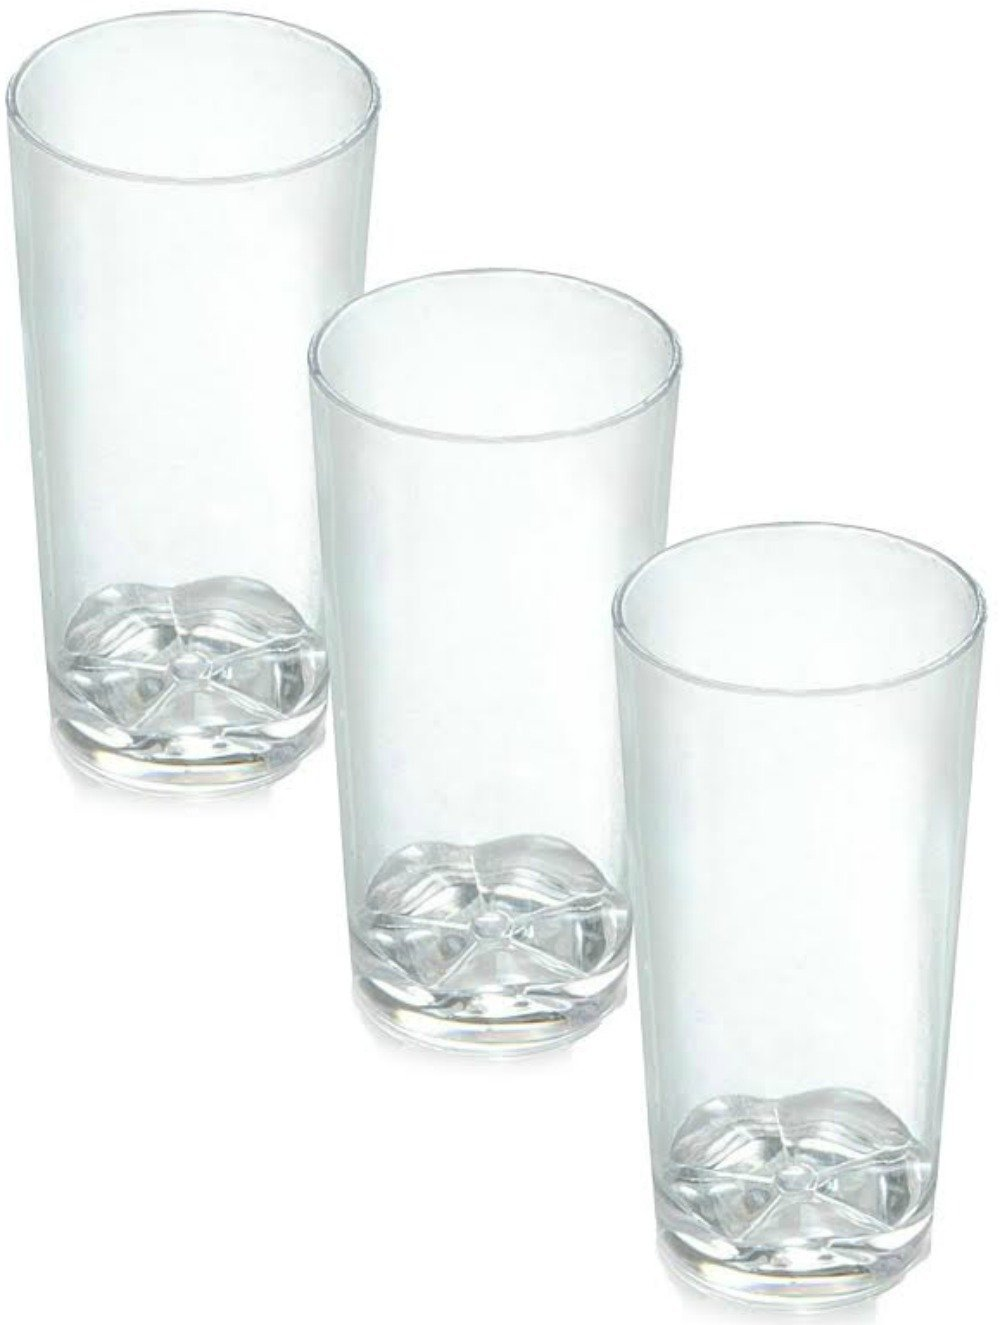 Zappy 208 Disposable Plastic Straight Wall Shooter Glasses 1.75 Oz Clear Tumblers - Tasting Sample Dessert Shooters Wine Tasting glasses Beer Champagne Jello Cup Crystal Shot Glass Cups ( 208 Ct)